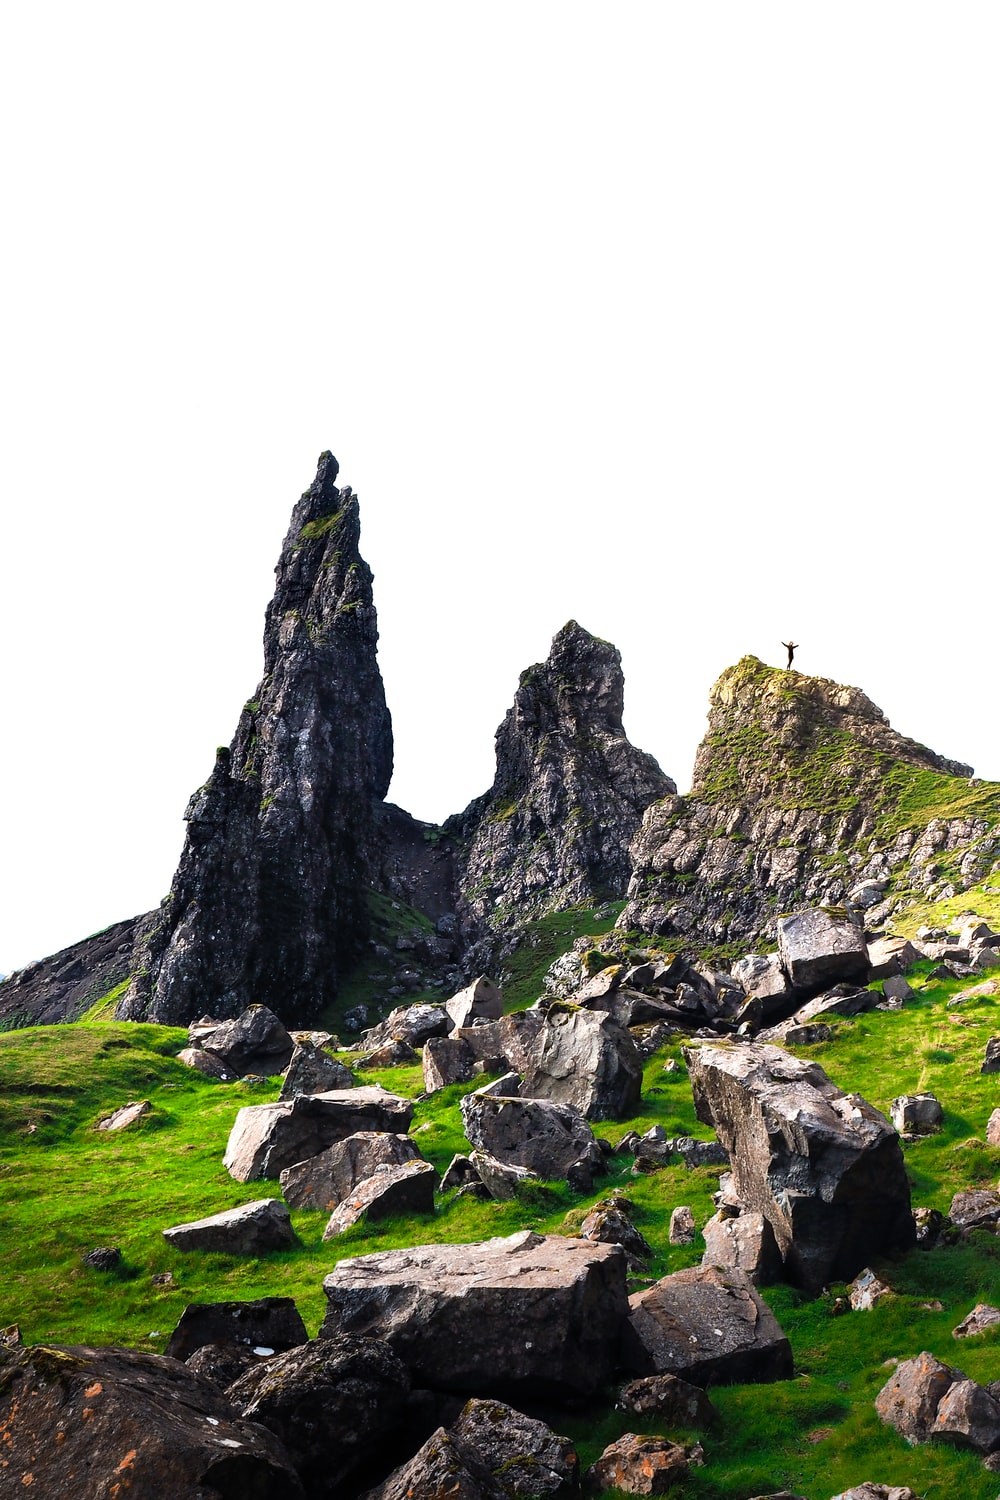 gray rock formations on green field during daytime